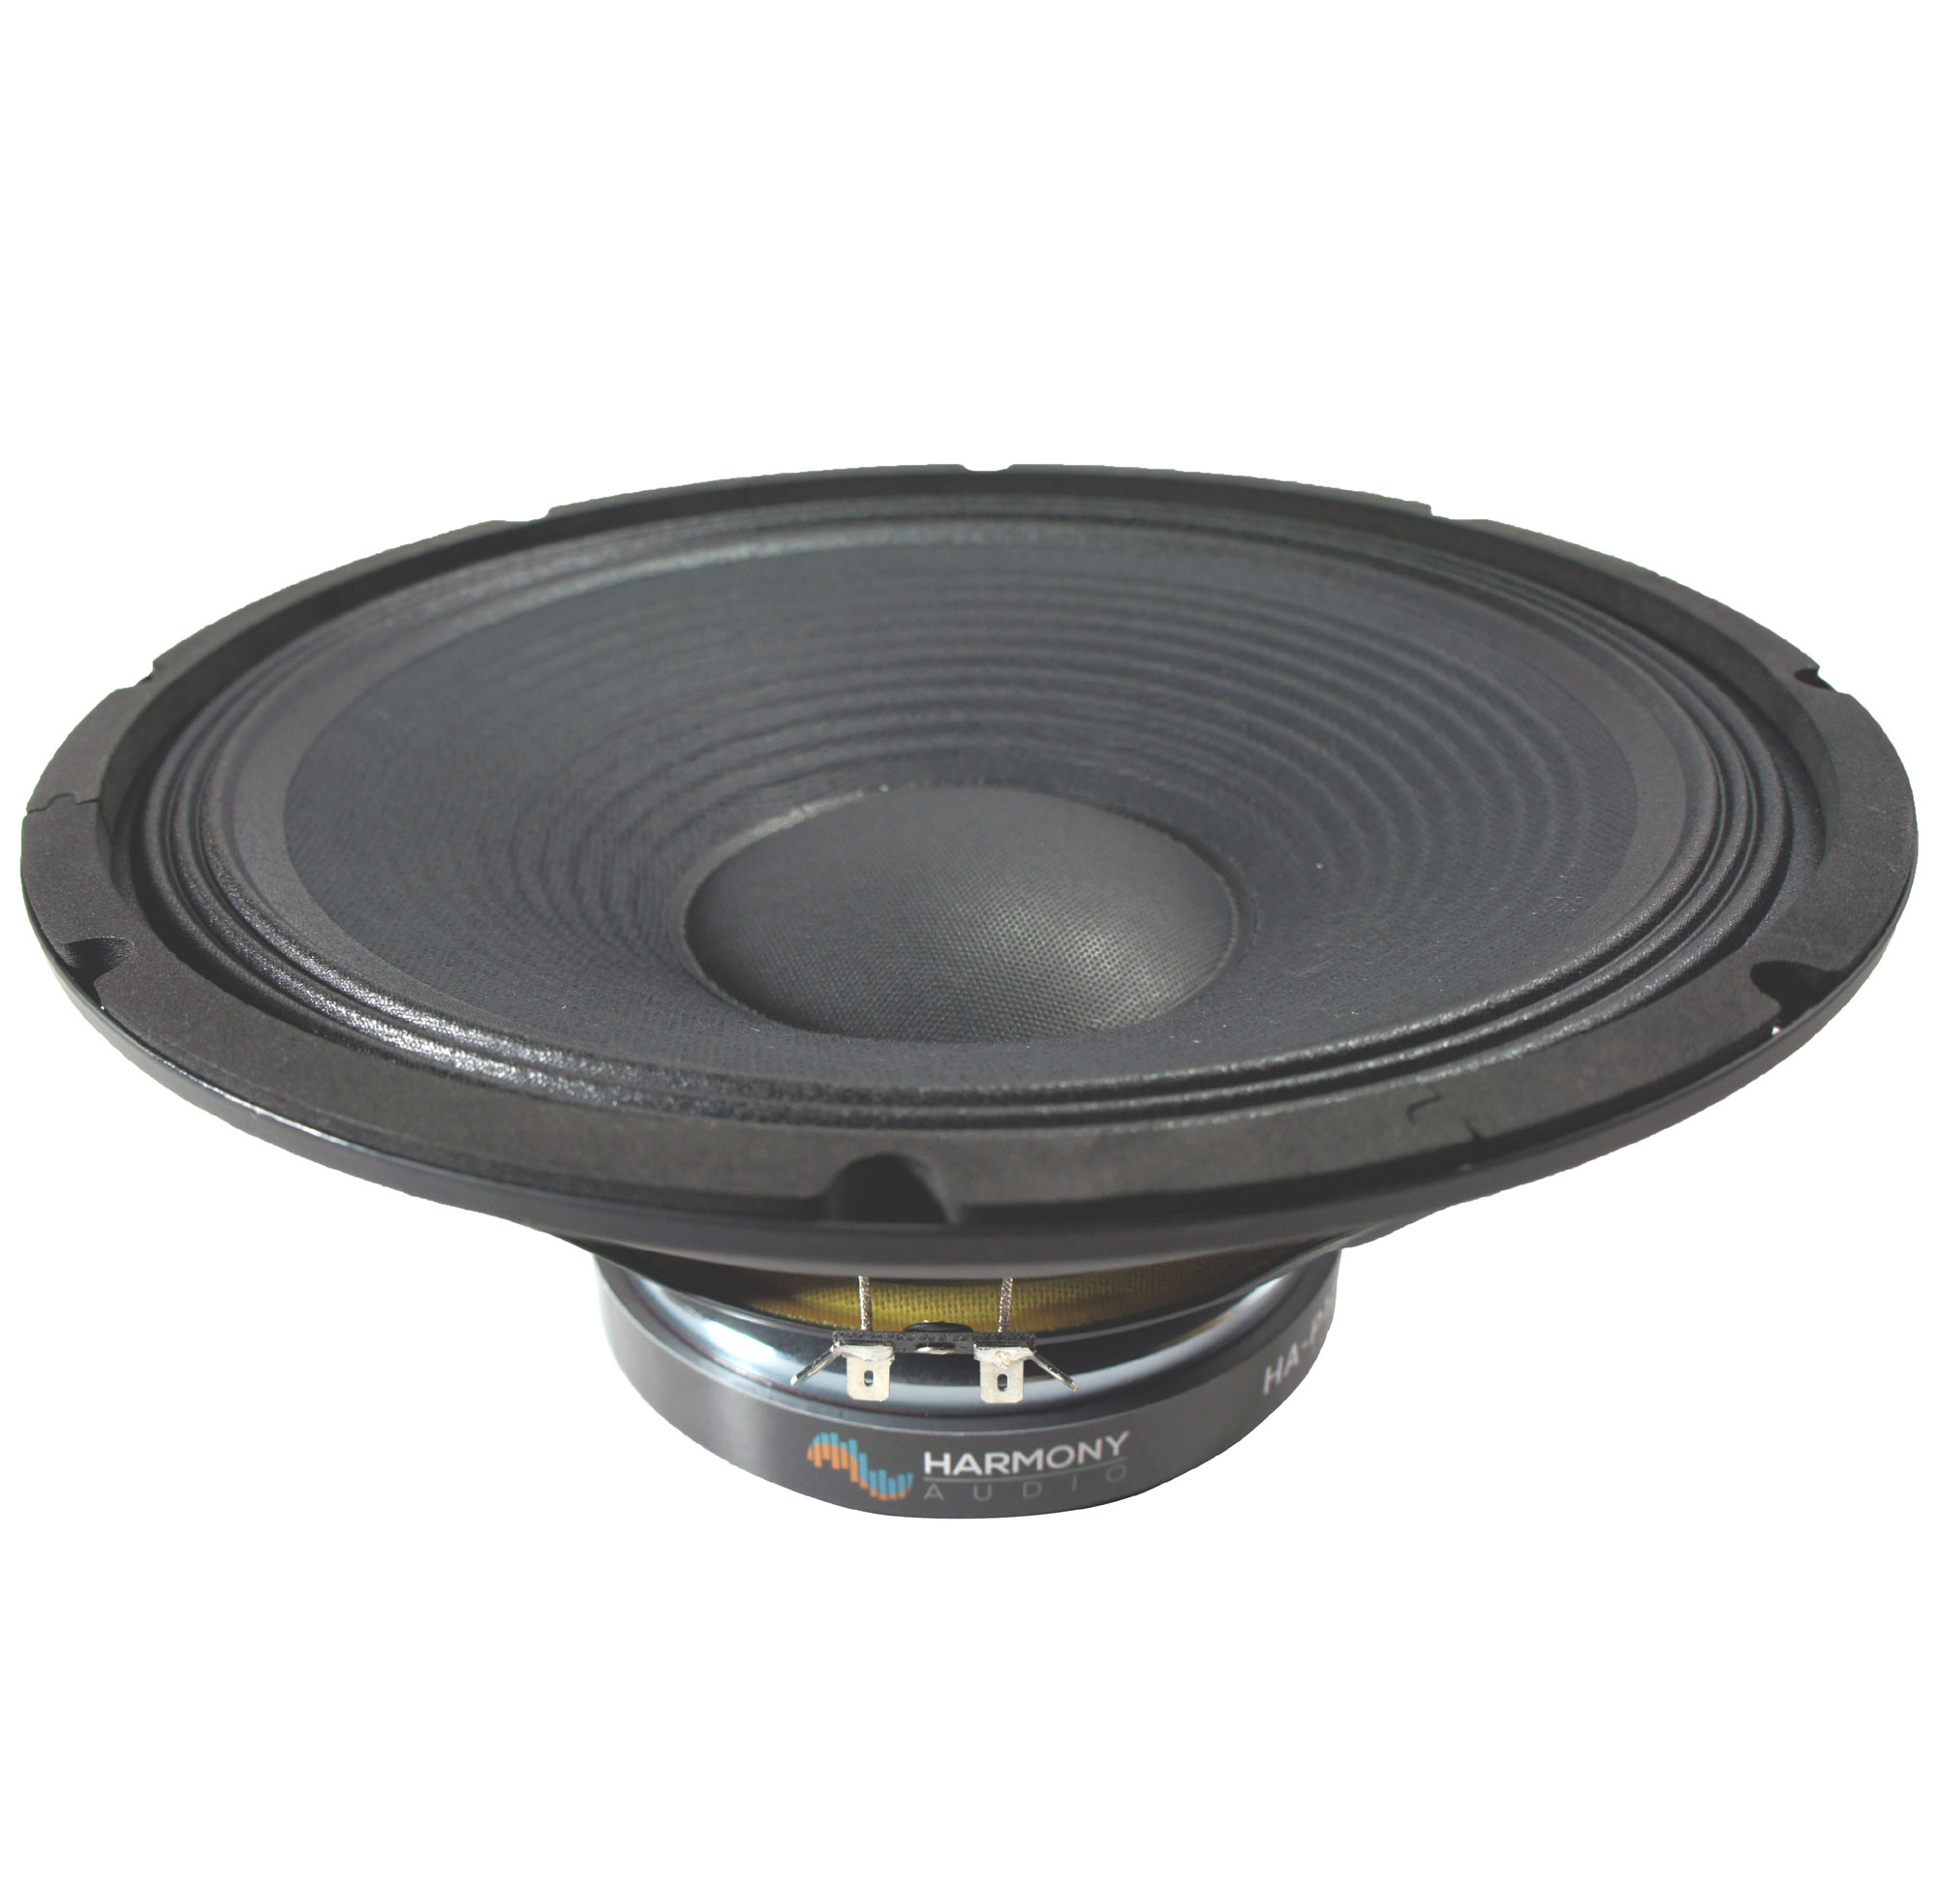 "Harmony HA-P12WS8 Replacement 12"" PA Speaker 8 Ohm Woofer for EV ZLX-12BT"